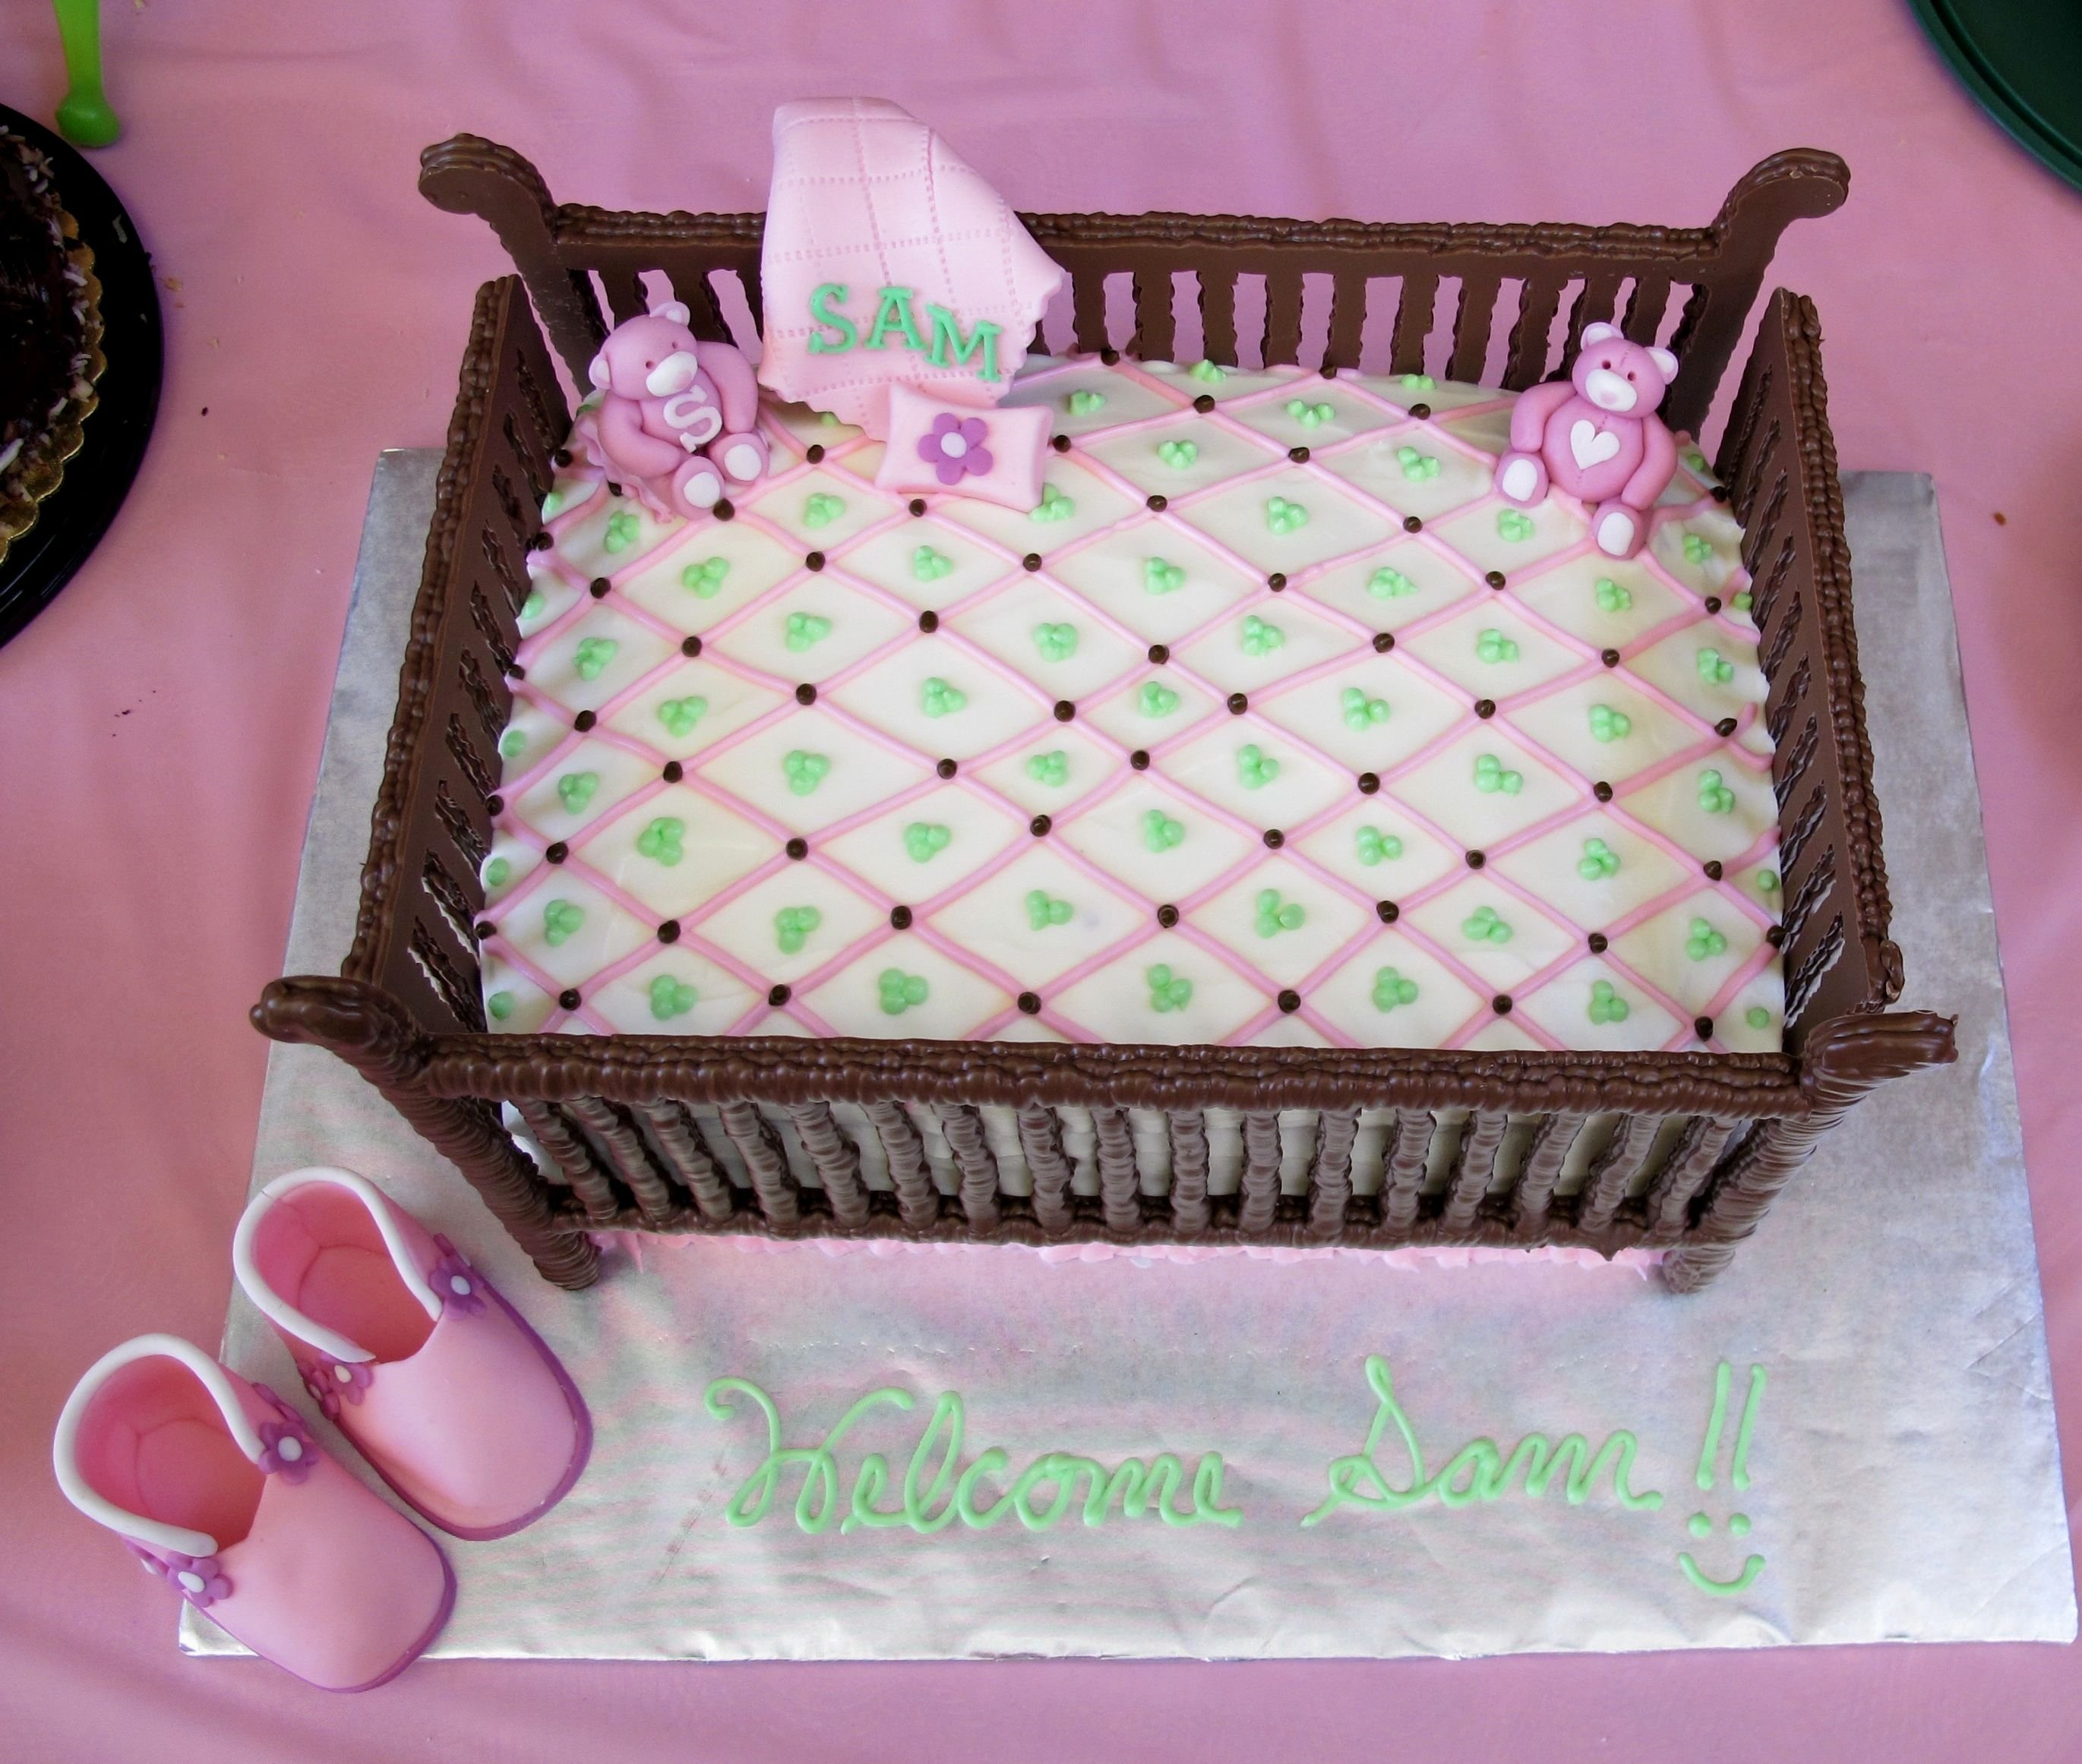 10 Nice Baby Shower Sheet Cake Ideas astounding design baby shower sheet cakes for girl cake ideas a 2020